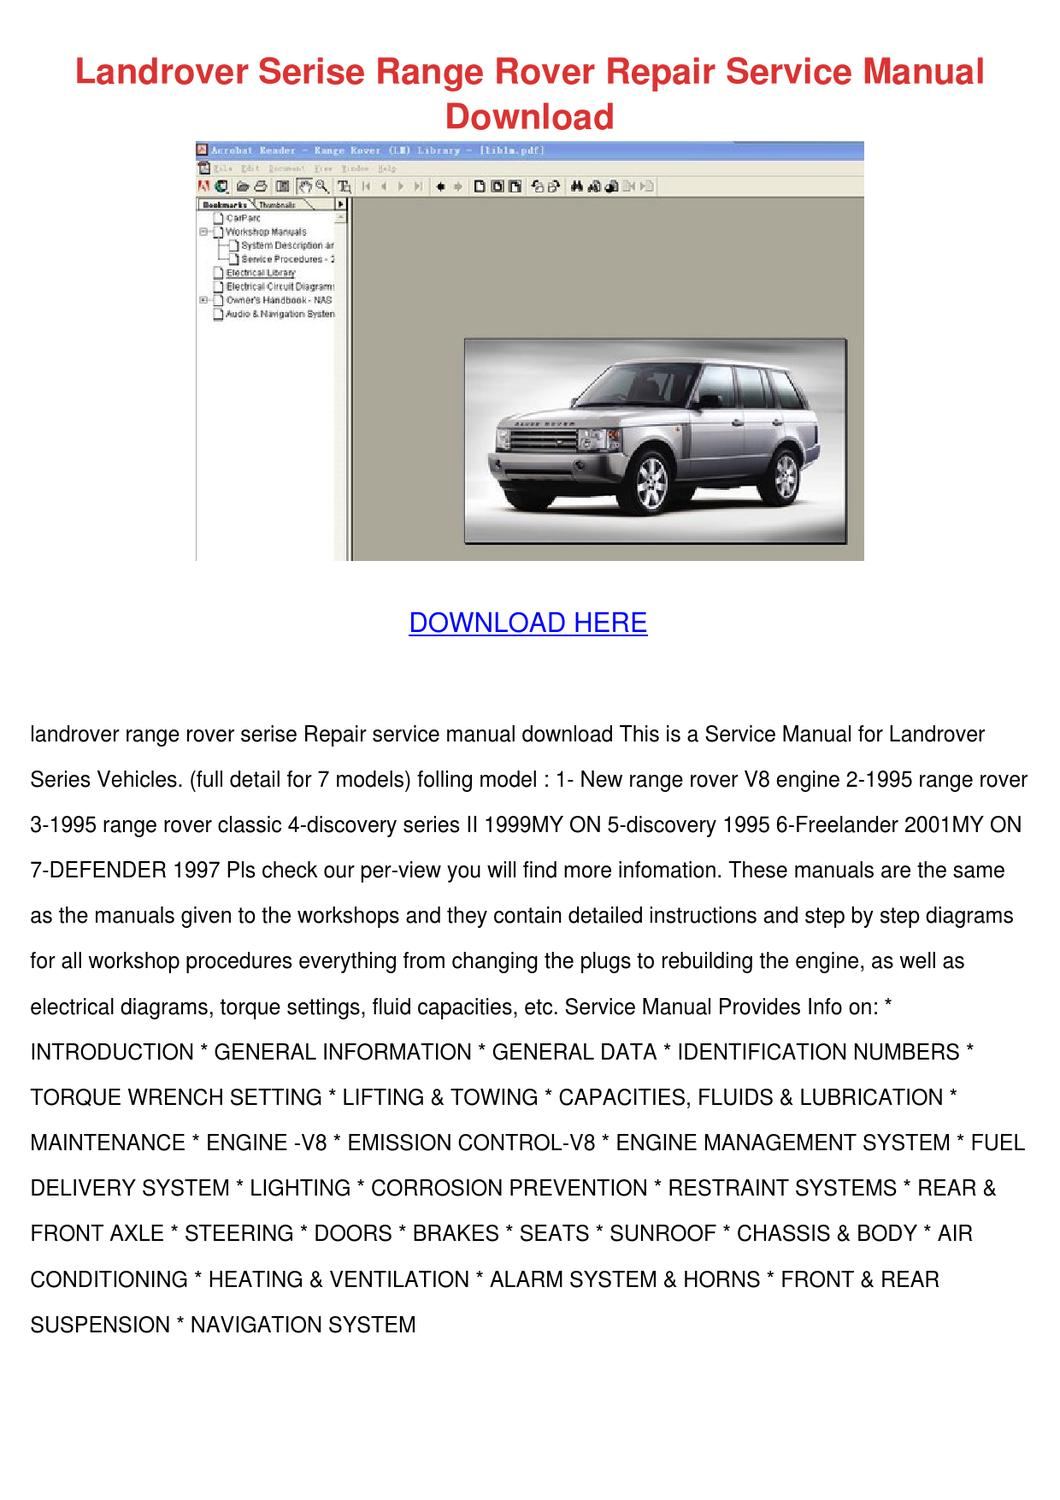 Landrover Serise Range Rover Repair Service M By Marionklein Issuu